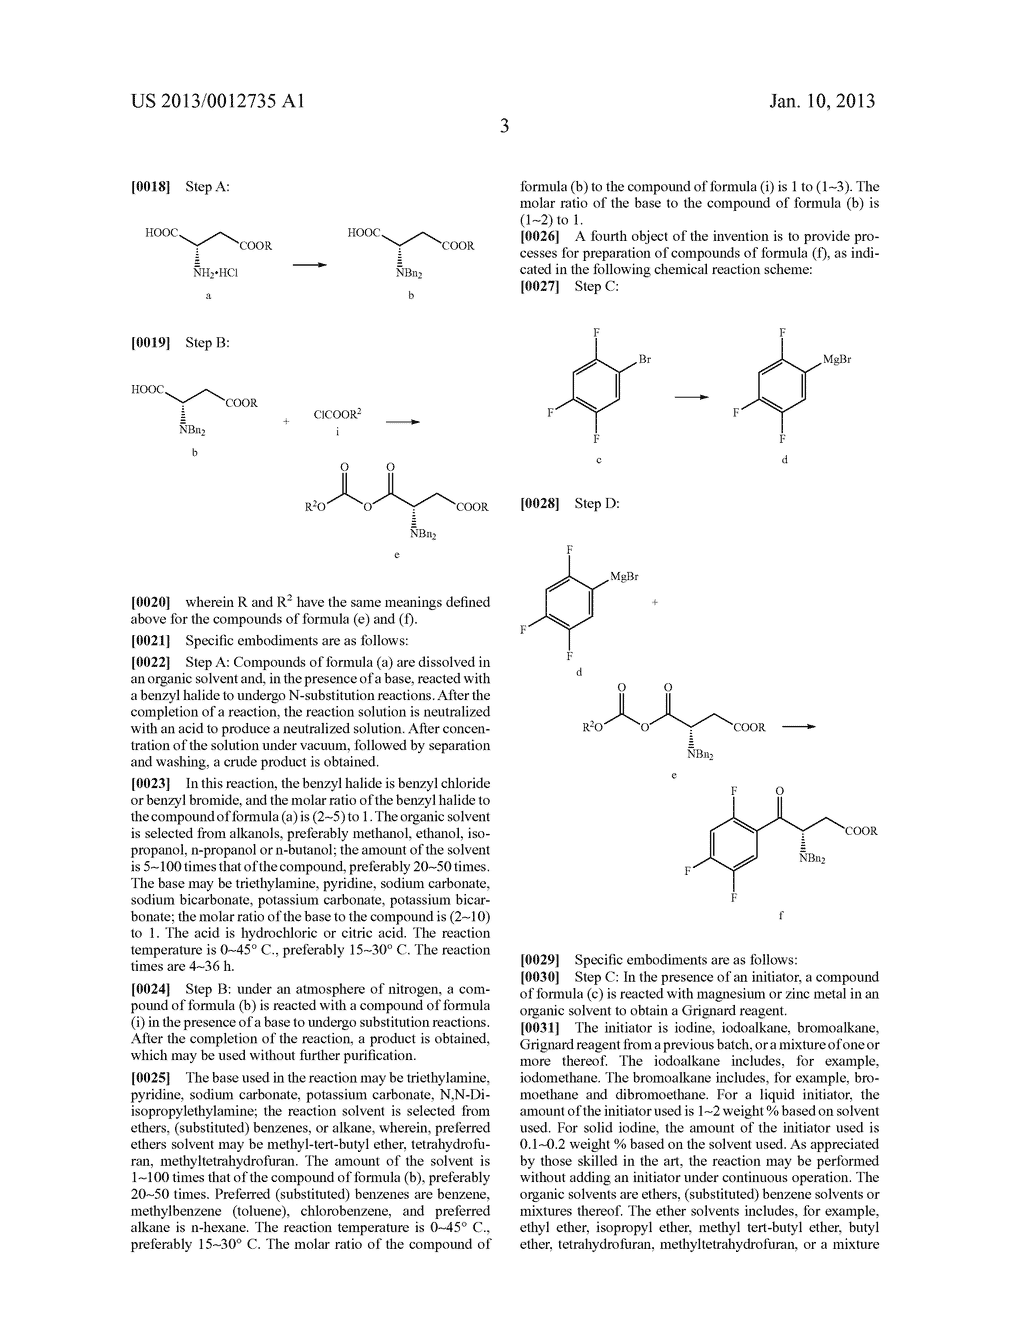 SITAGLIPTIN INTERMEDIATE COMPOUNDS, PREPARATION METHODS AND USES THEREOF - diagram, schematic, and image 04